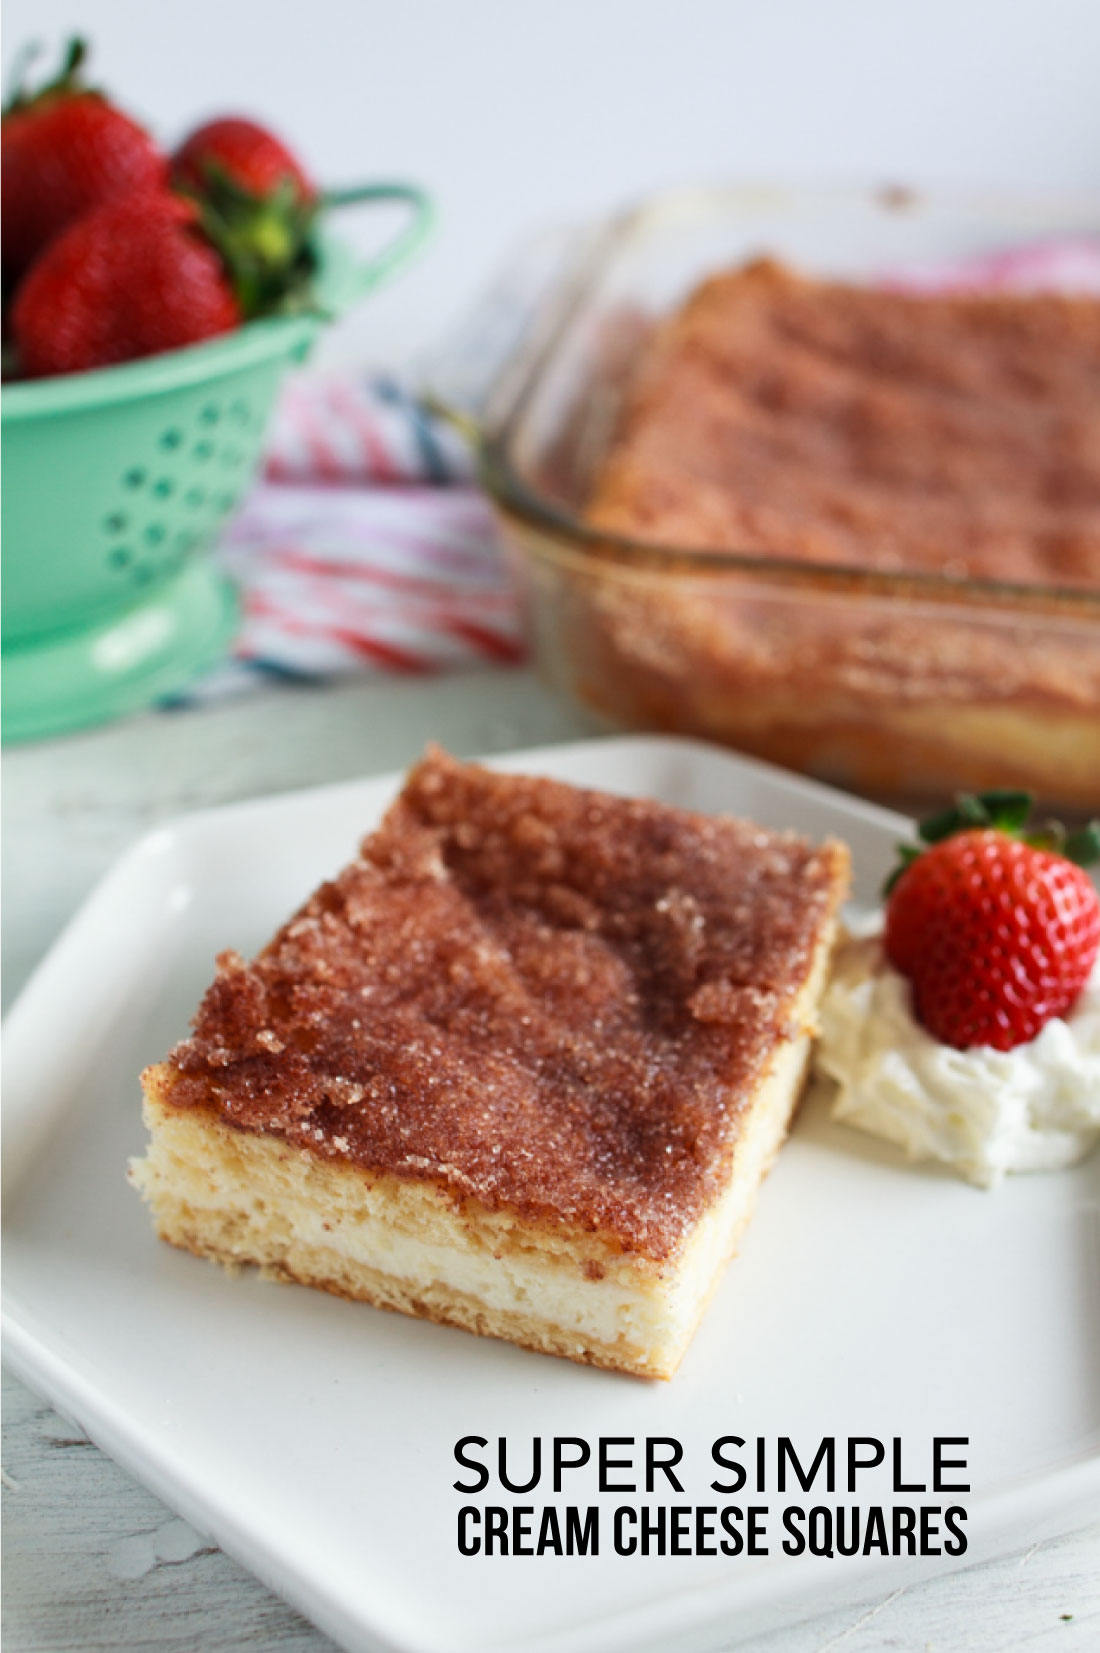 Super Simple Cream Cheese Squares Dessert